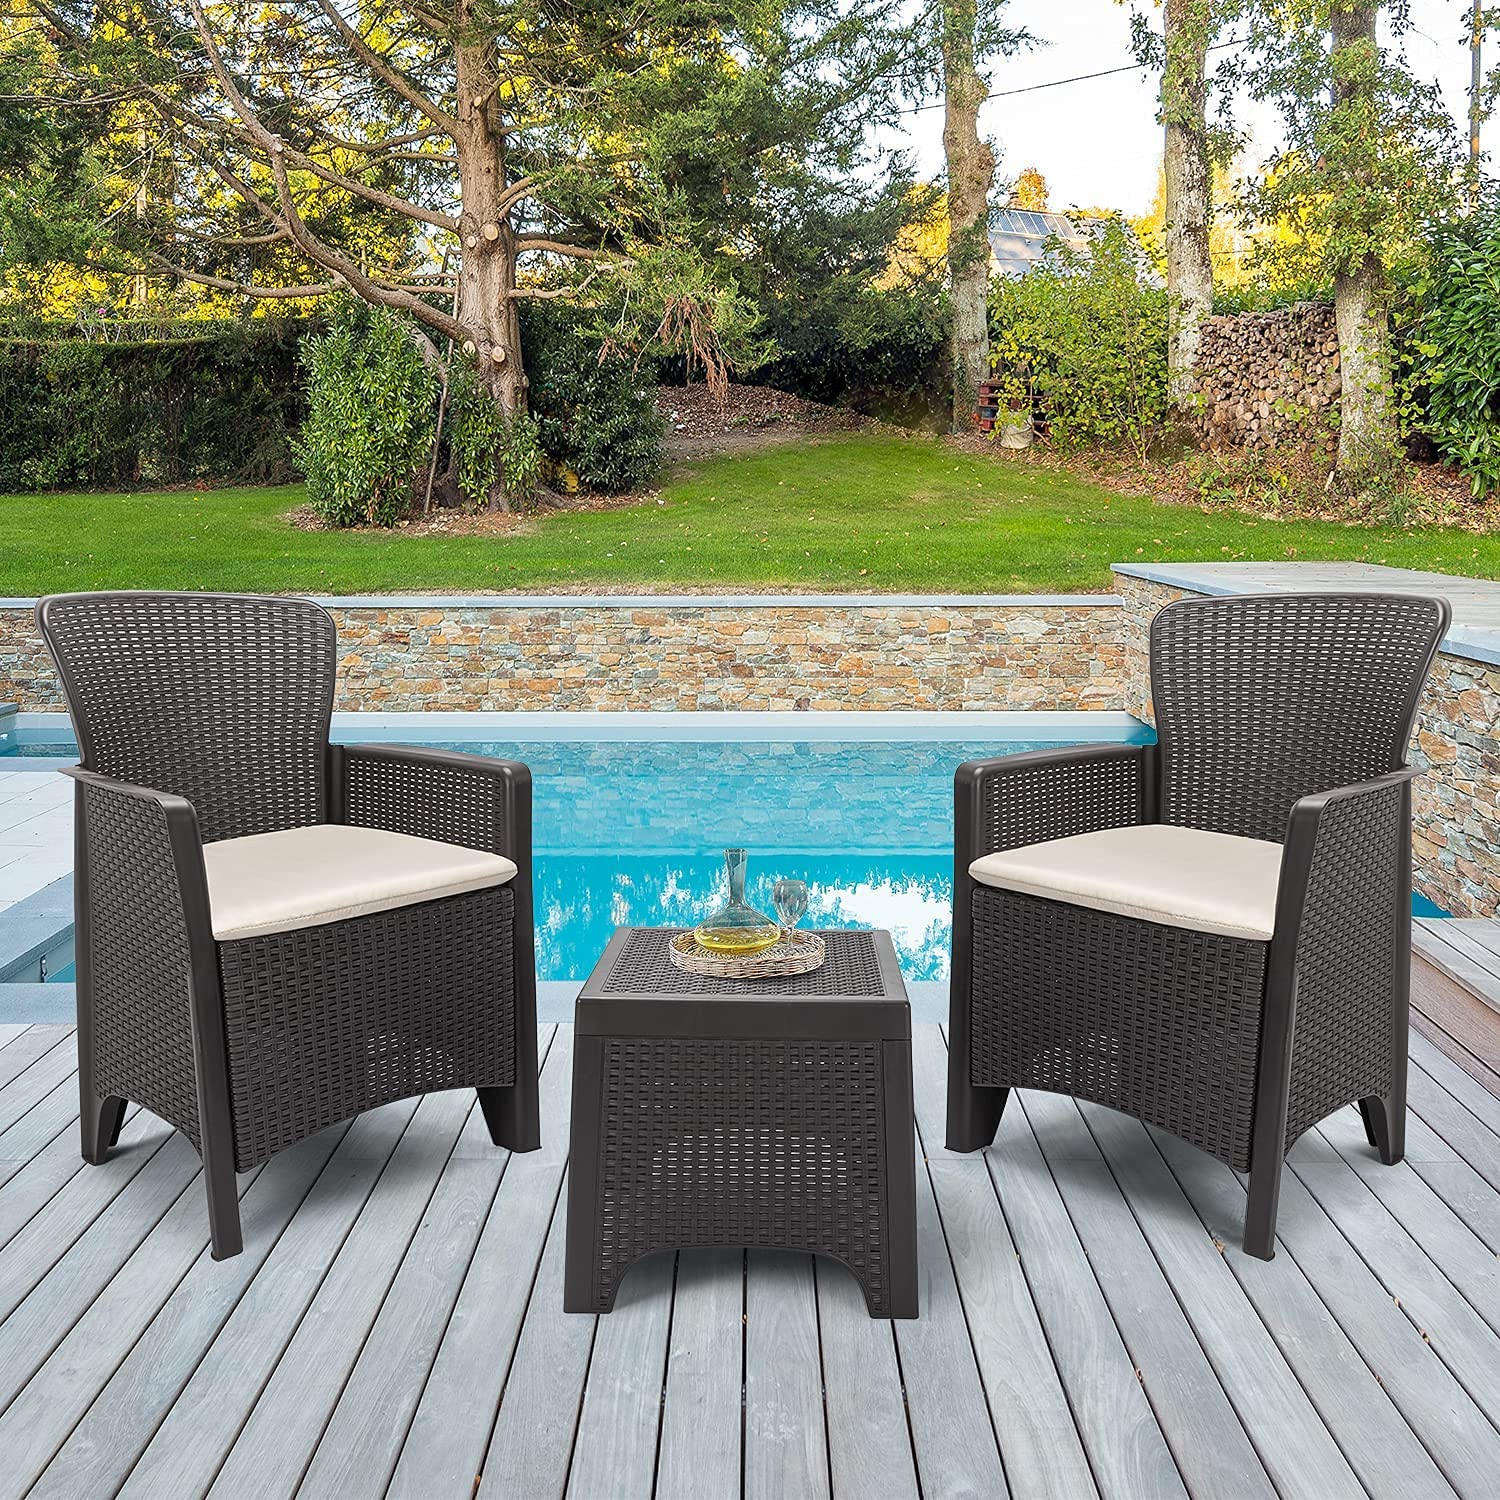 Wicker Patio Furniture Don't miss the campaign Set Outdoor Finally popular brand Furgle Sets 3-Piec